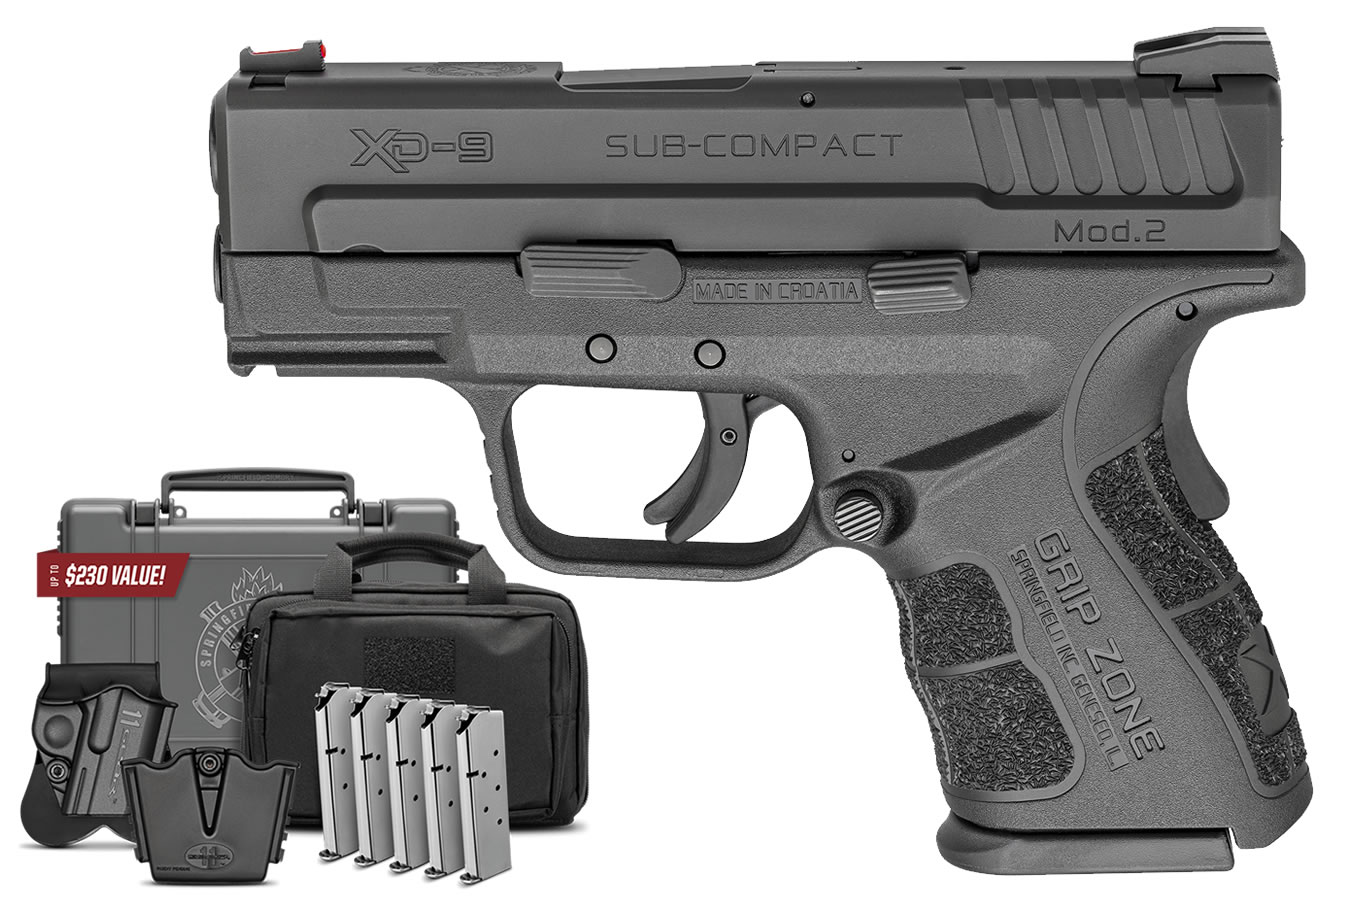 No. 11 Best Selling: SPRINGFIELD XD MOD 2 9MM SUB-COMPACT GEAR UP 3IN BBL FIBER OPTIC FRONT SIGHT 16 ROUND MAG